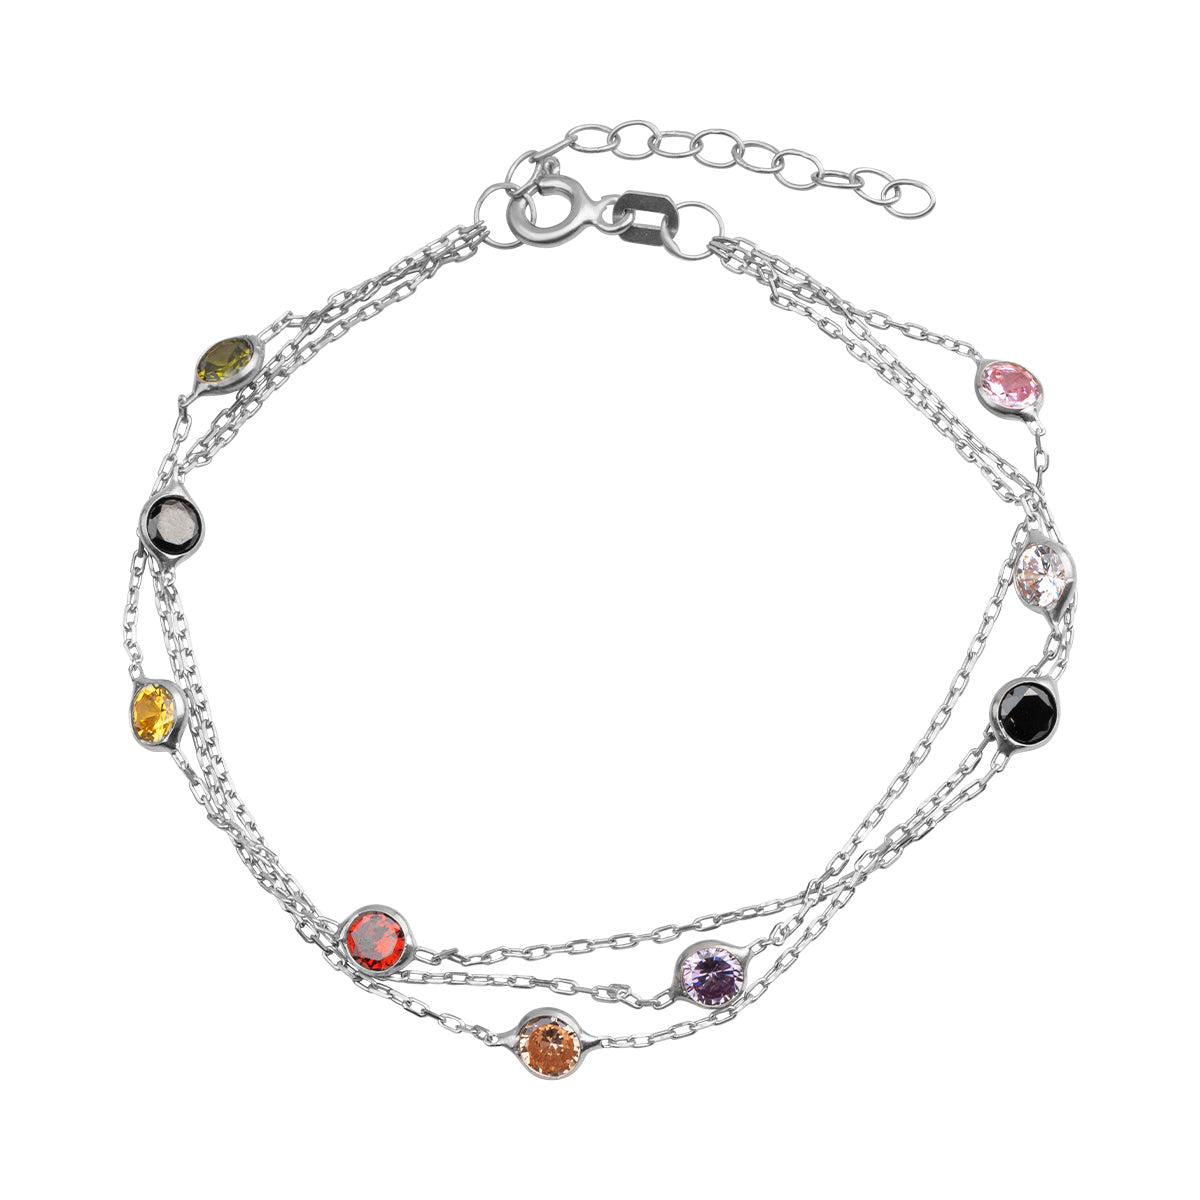 925 Sterling silver rhodium plated, layered chain bracelet with colorful beads.